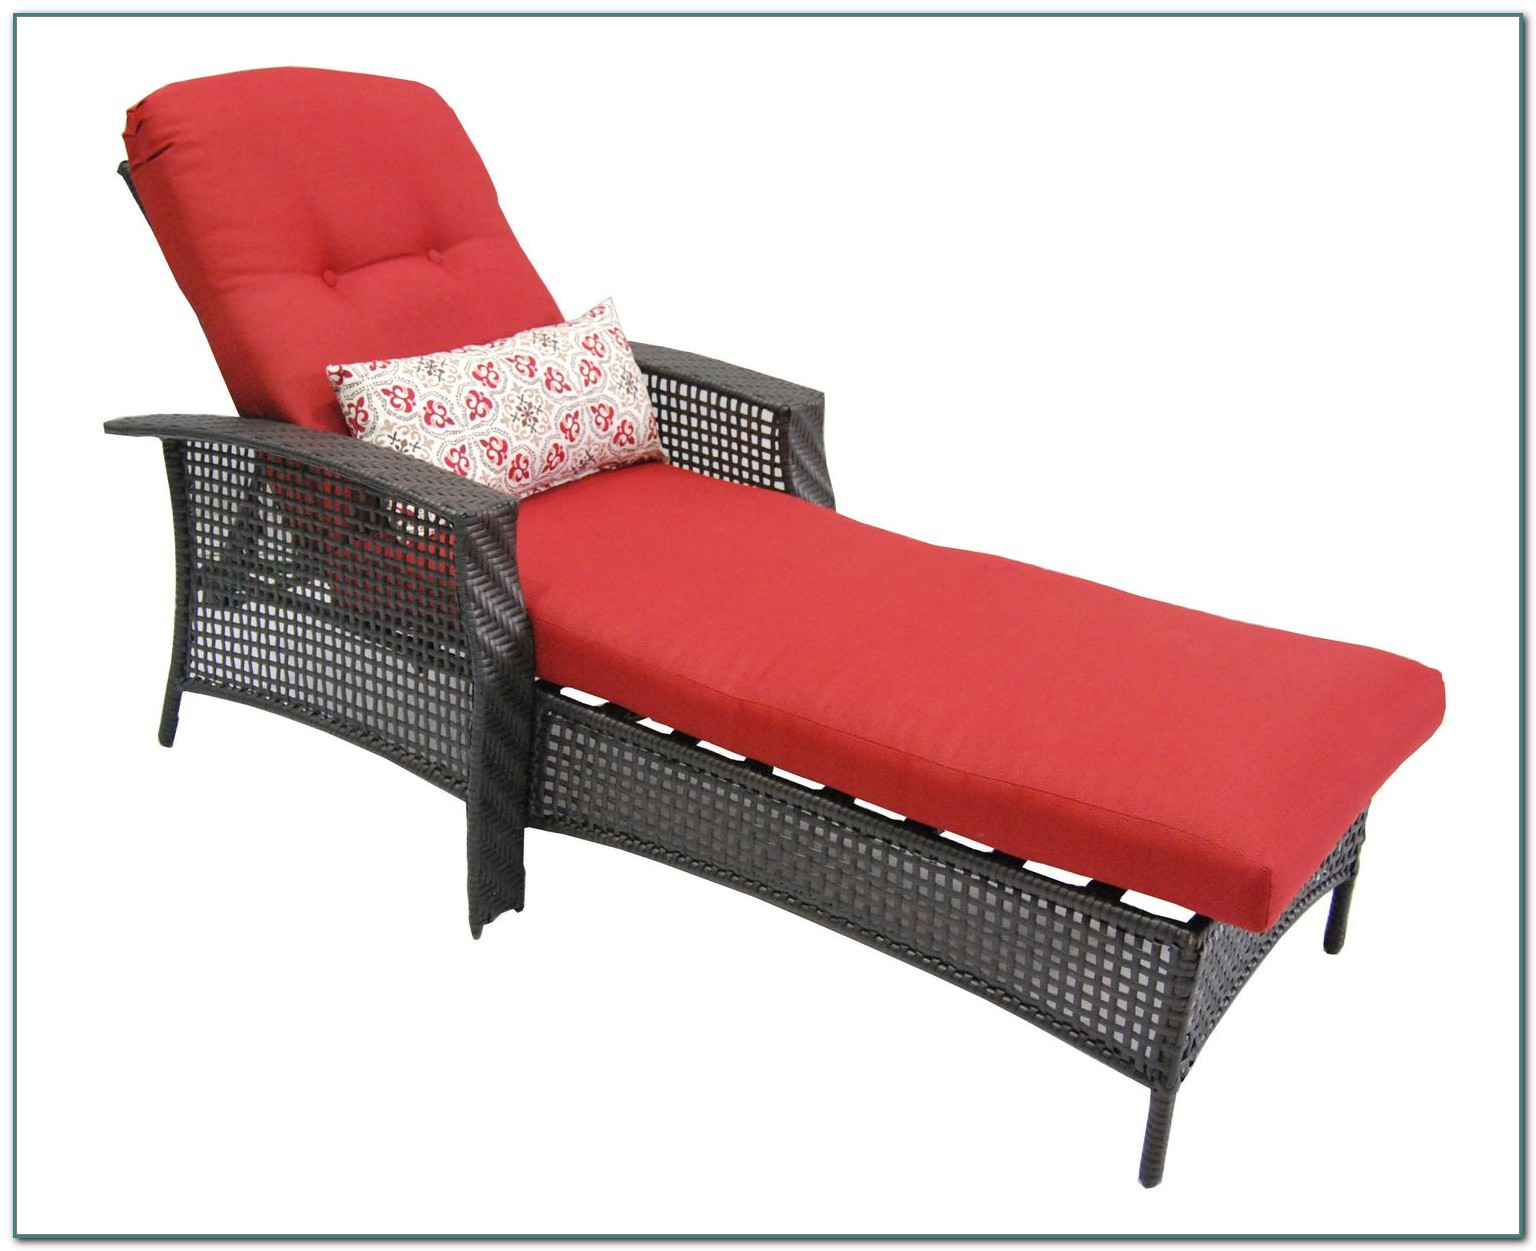 Patio Lounge Chairs Walmart Canada